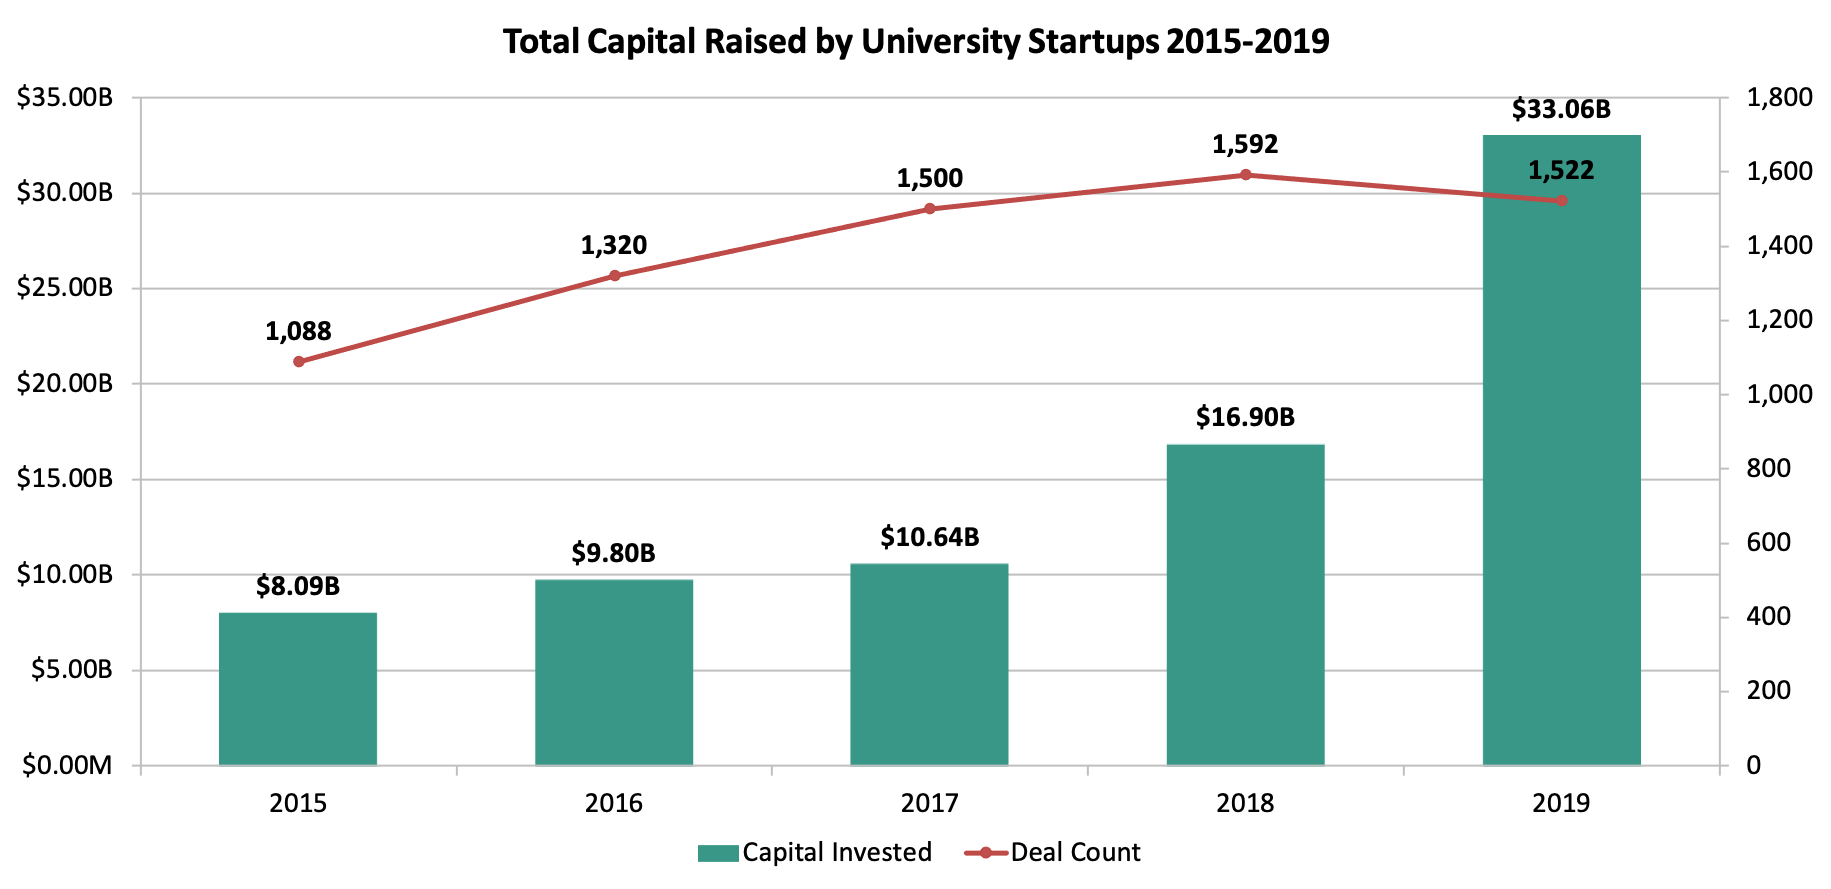 graph, Total Capital Raised by University Start-ups 2015-2019 goes from $8b-33b